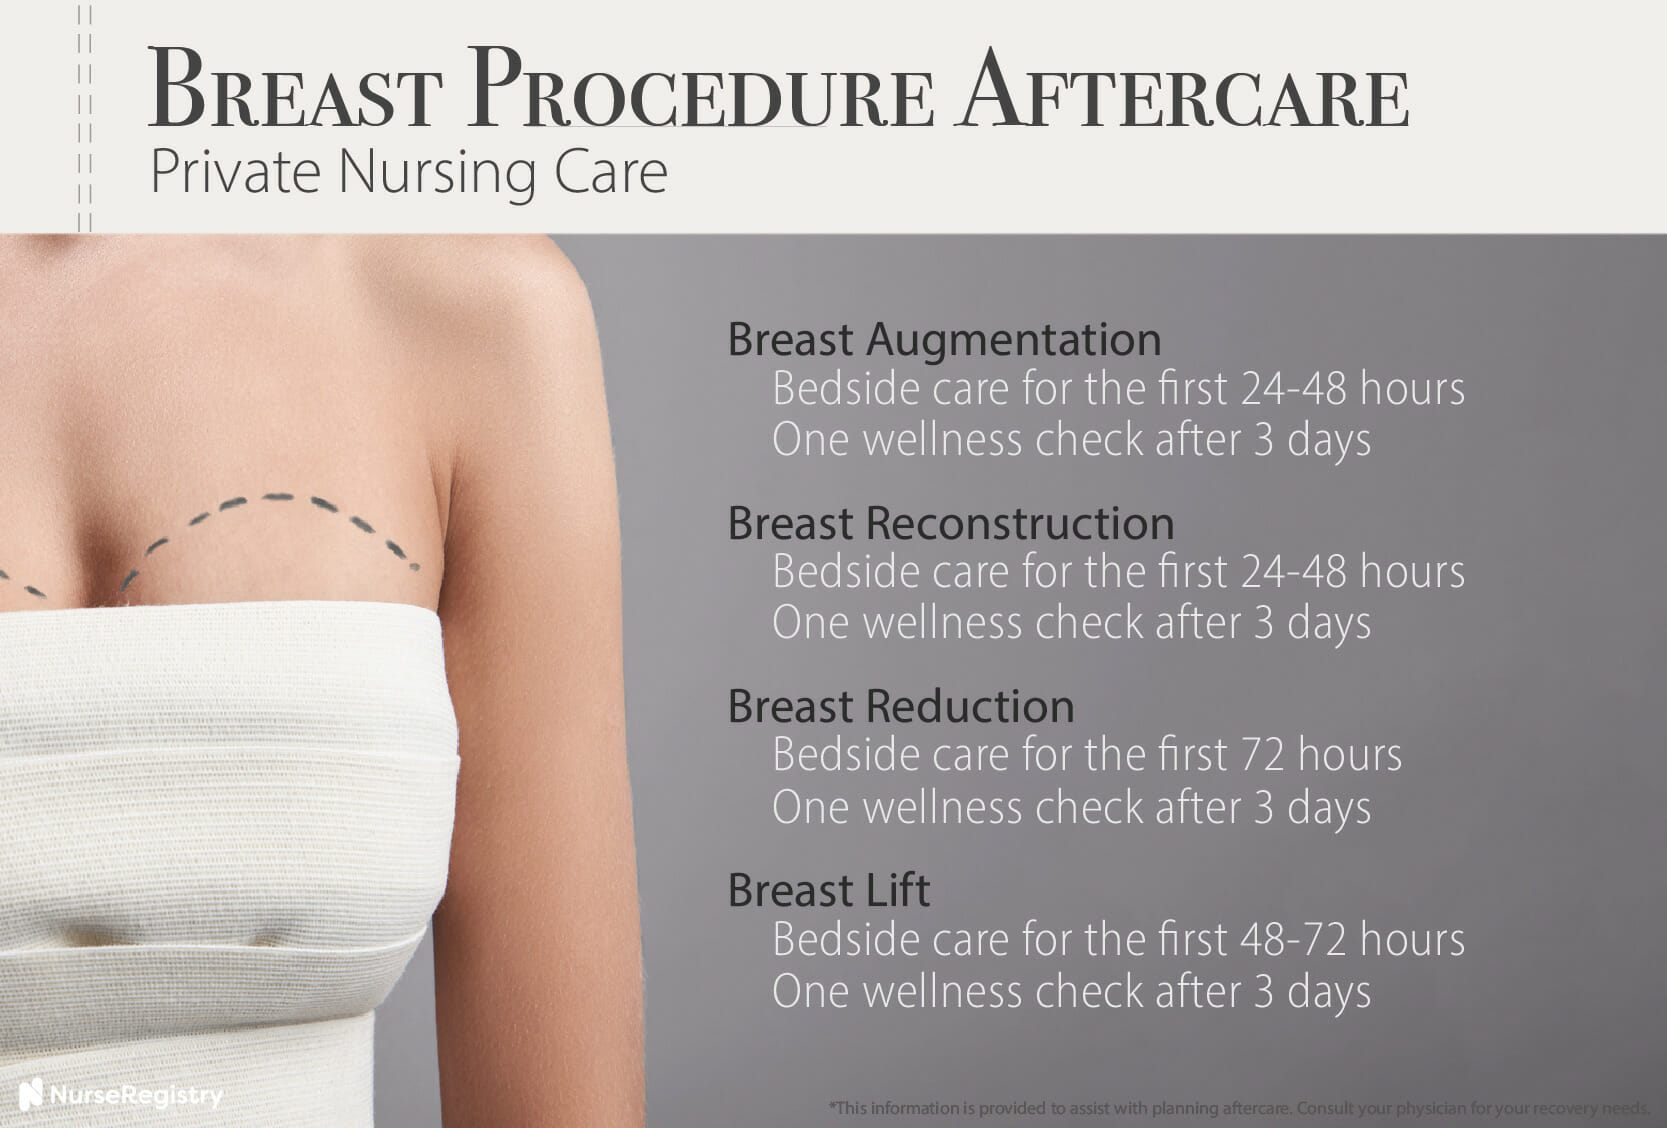 plastic surgery private nurse aftercare recommendations for breast procedures infographic